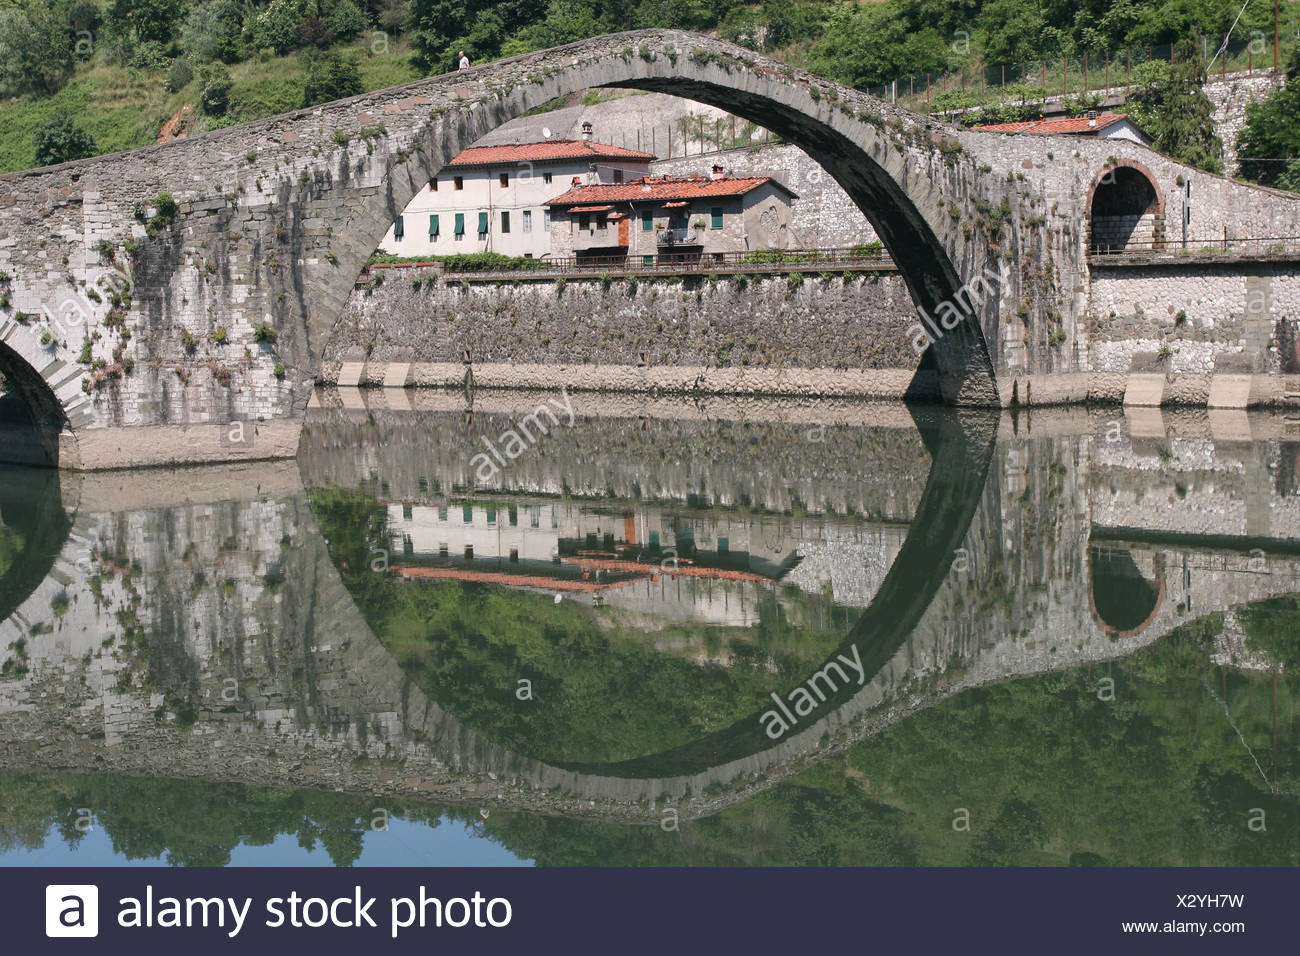 ponte di diavolo,borgo Stock Photo